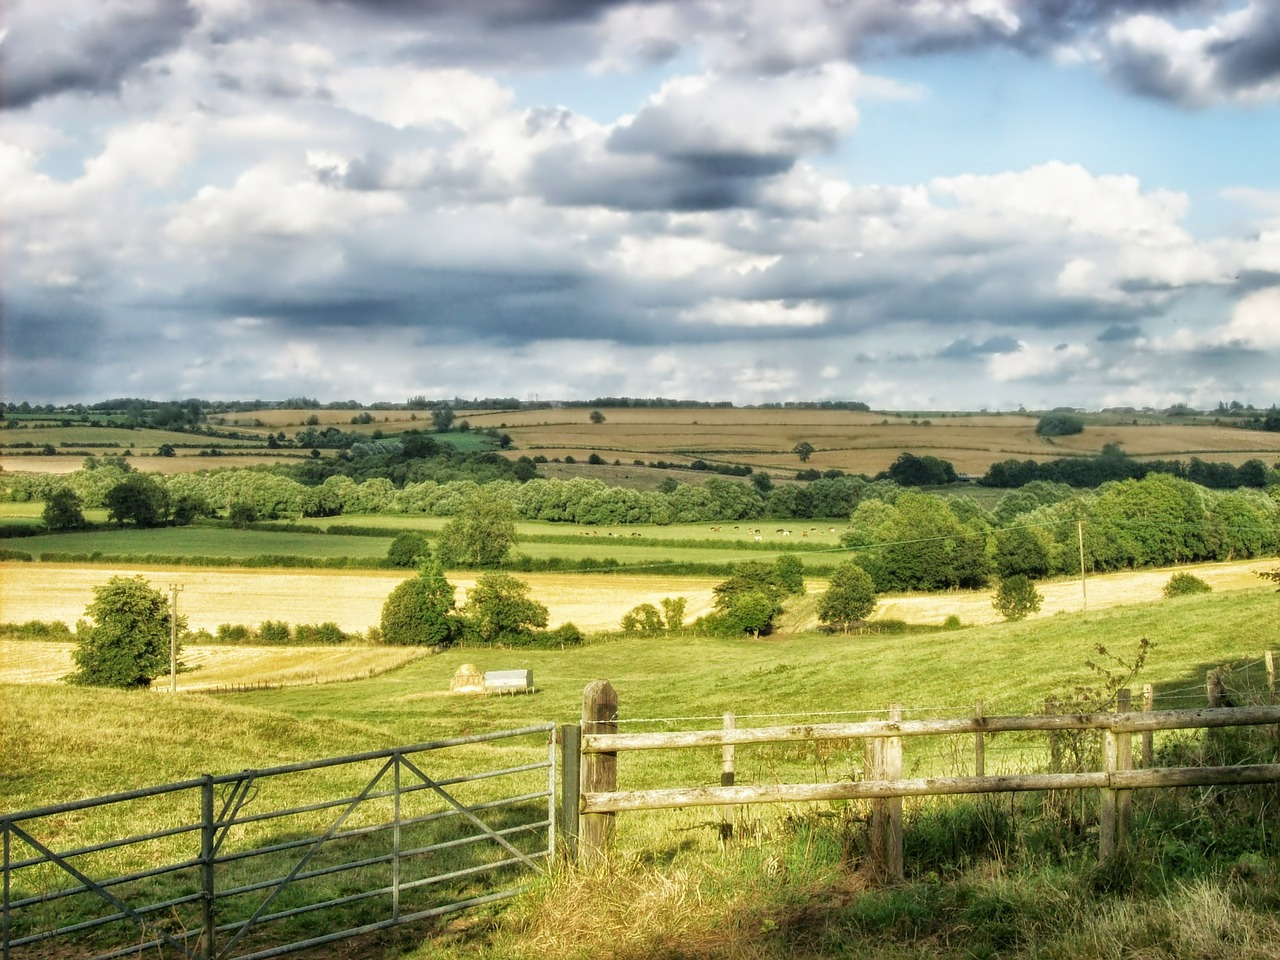 Could rural Sussex be under threat from development?